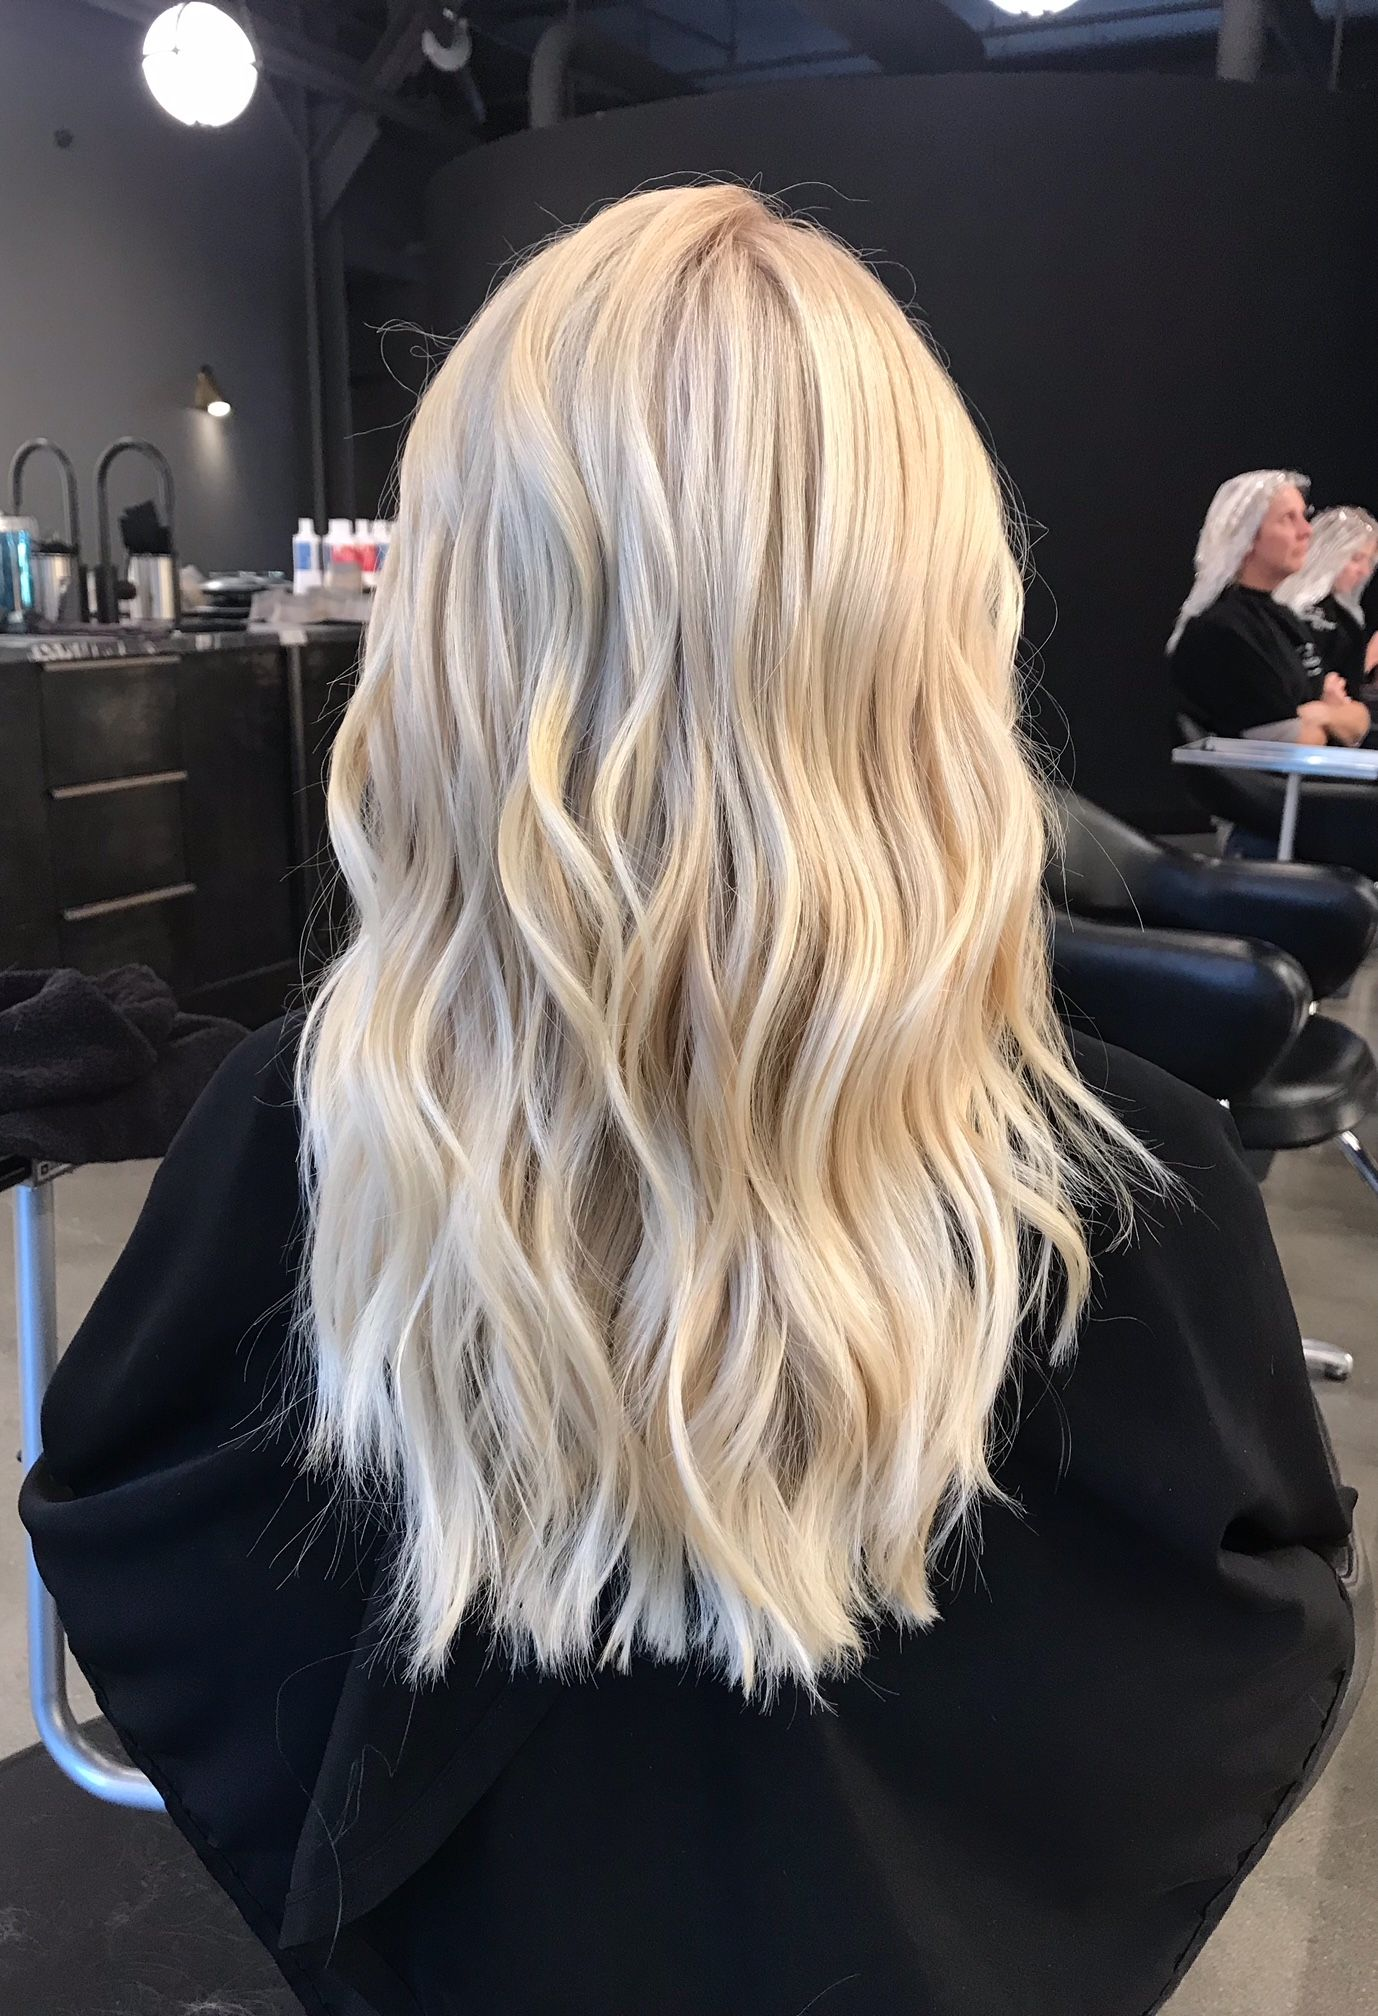 Best Hair Salons Indianapolis   G Michael Salon   Indy Gallery